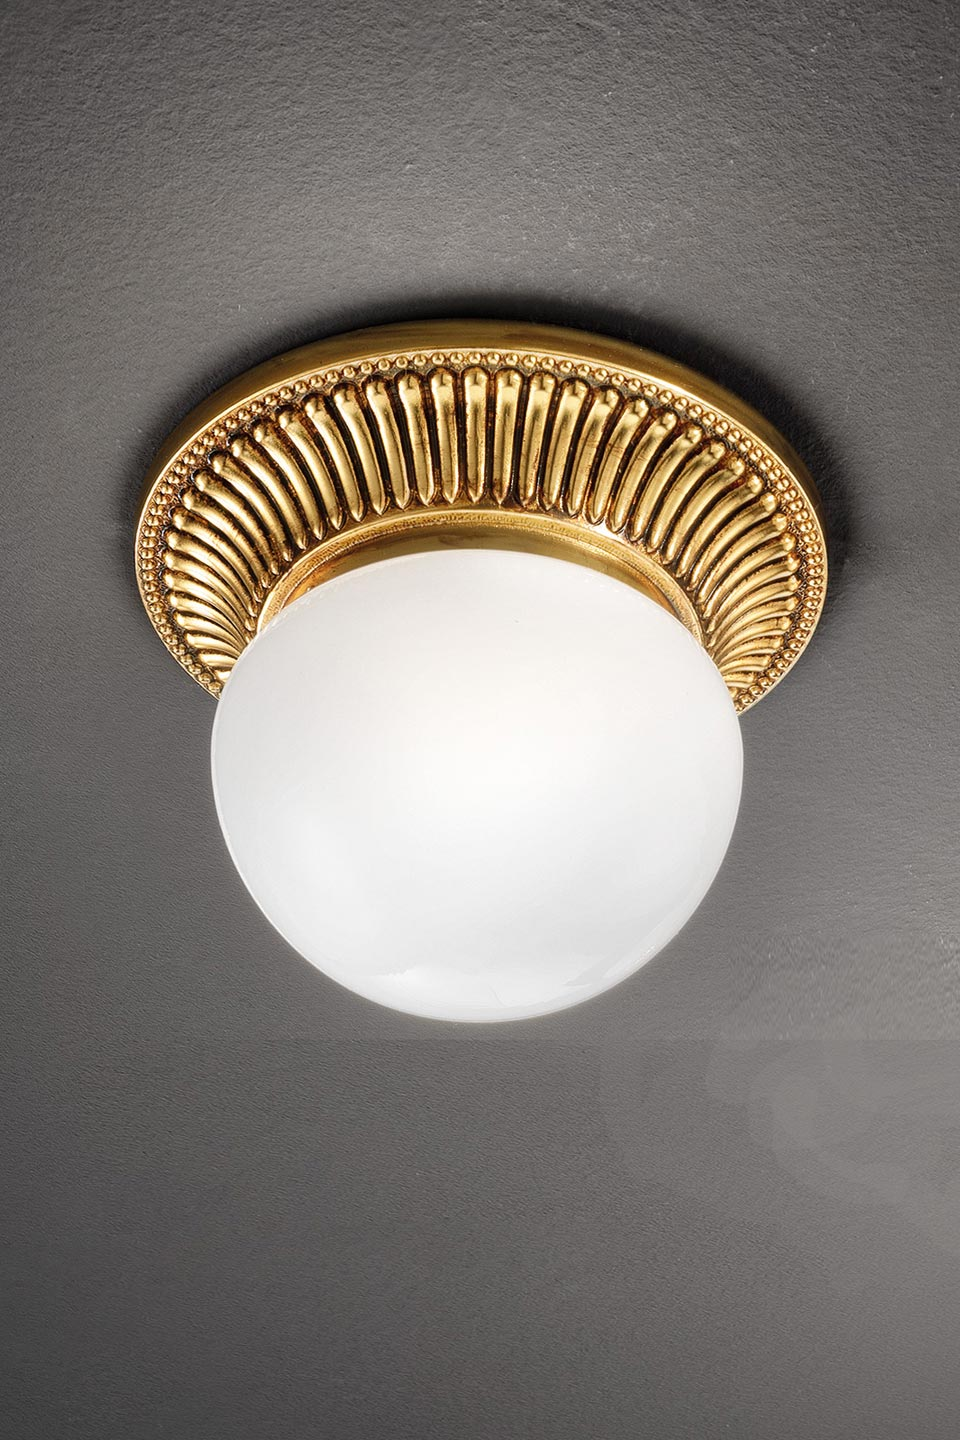 Small Round Gold Ceiling Light Masiero Murano And Crystal Chandeliers Lamps And Wall Lights Ref 20020115